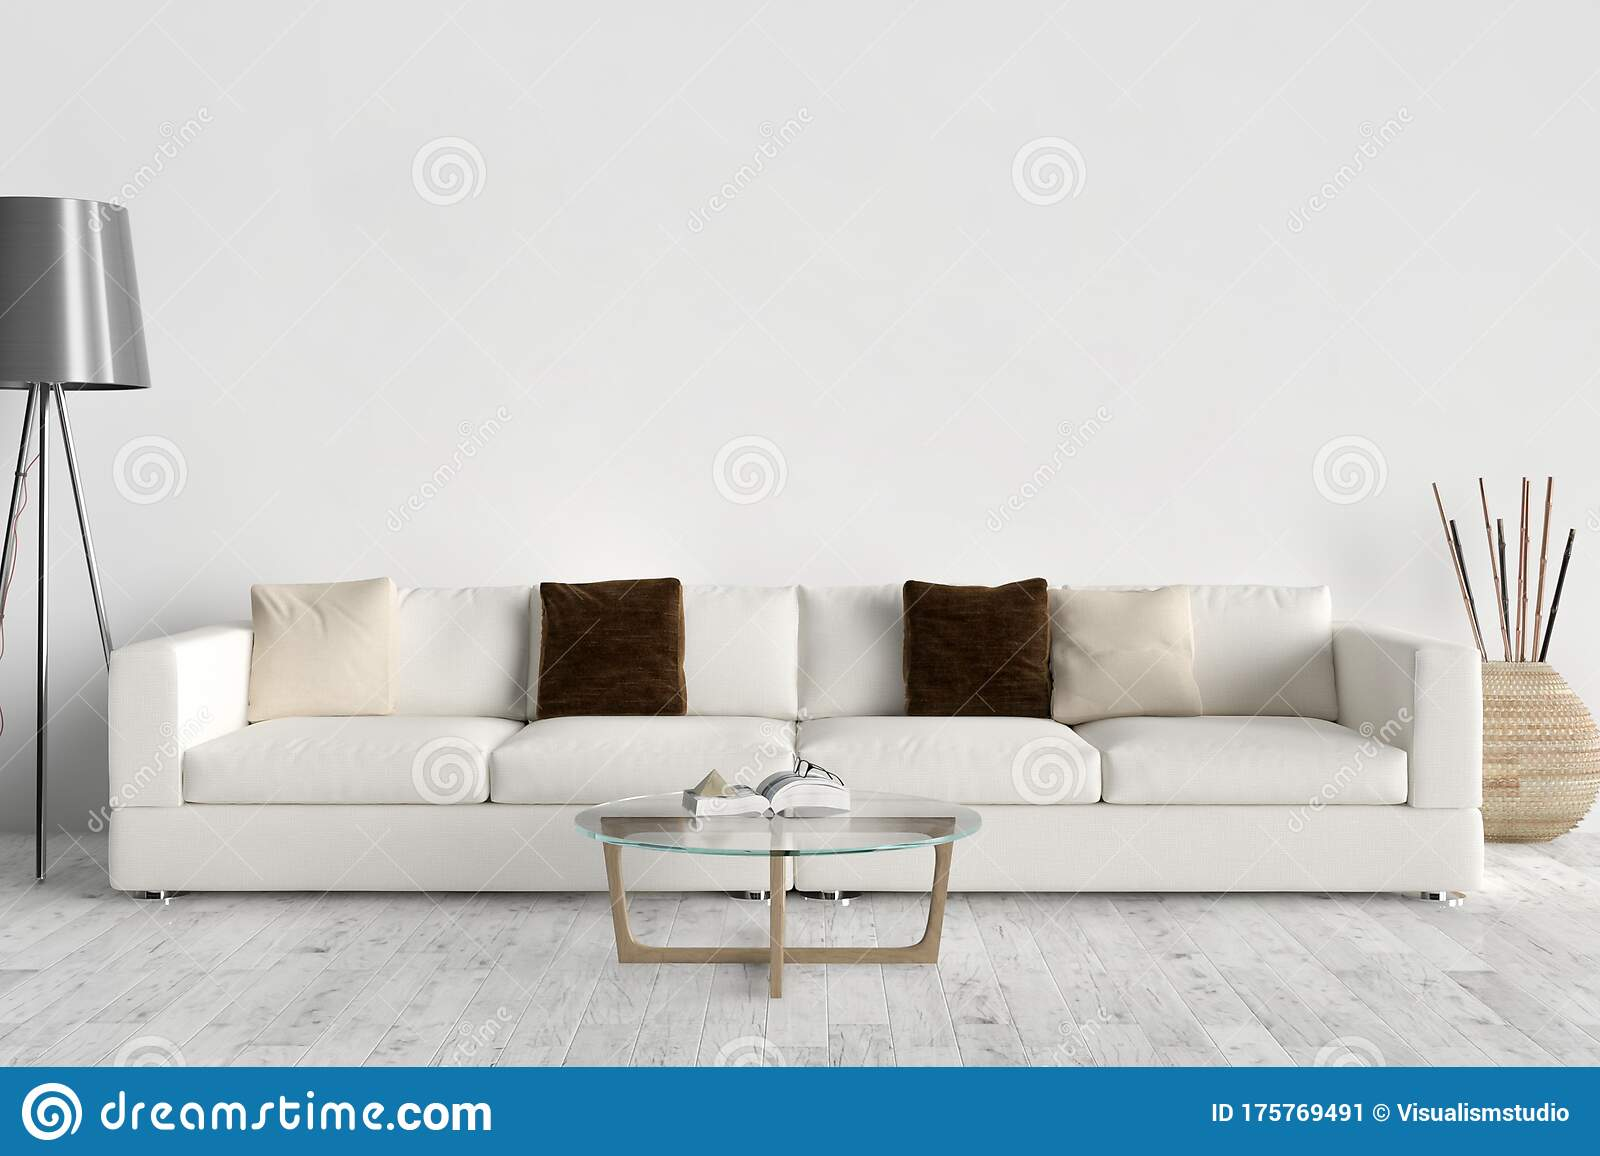 Picture of: Wall Bed And Chair Modern Mid Century Bedside Table And White Bed On White Wall Background Stock Image Image Of Bedchamber Empty 175769491